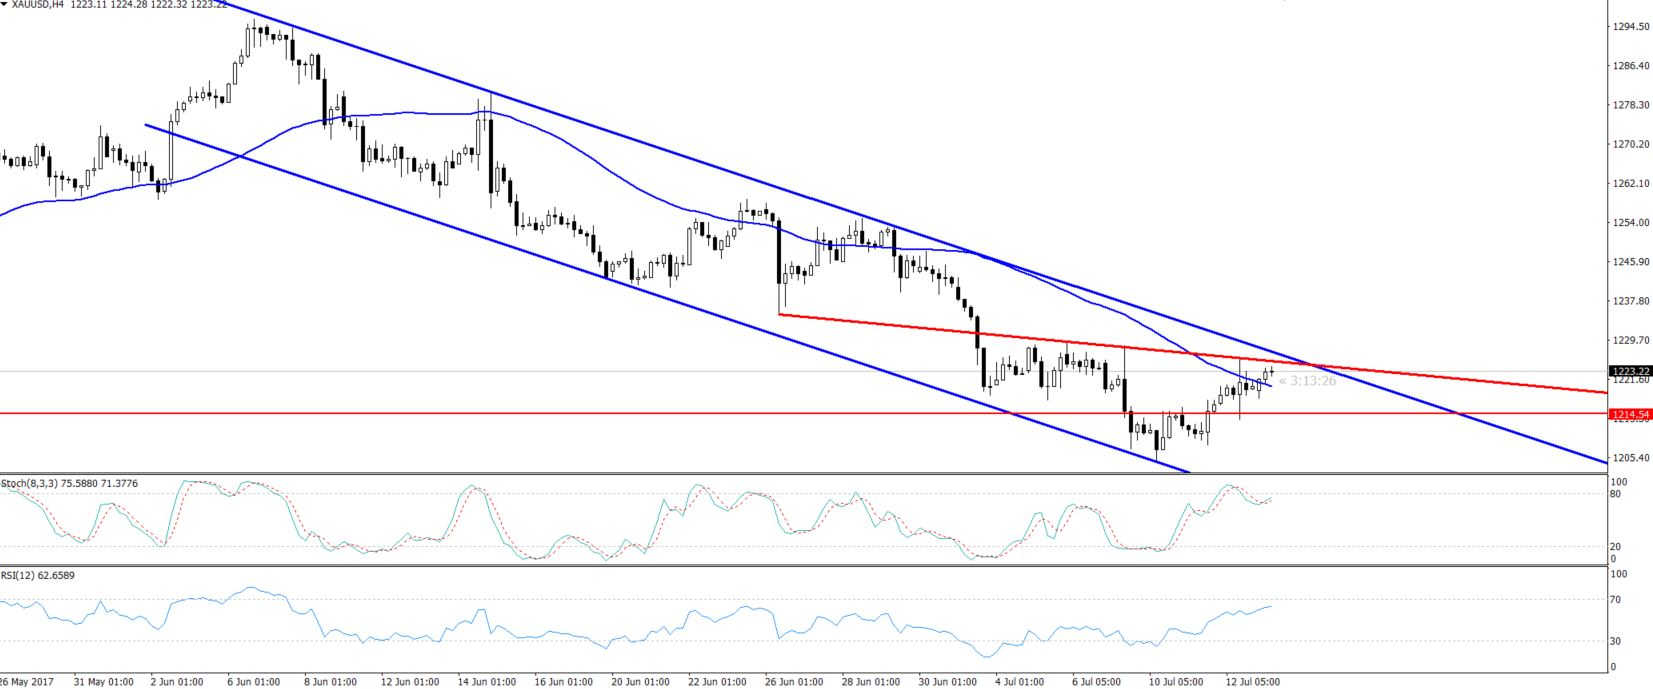 Gold - 4 Hours Chart - Bearish Channel